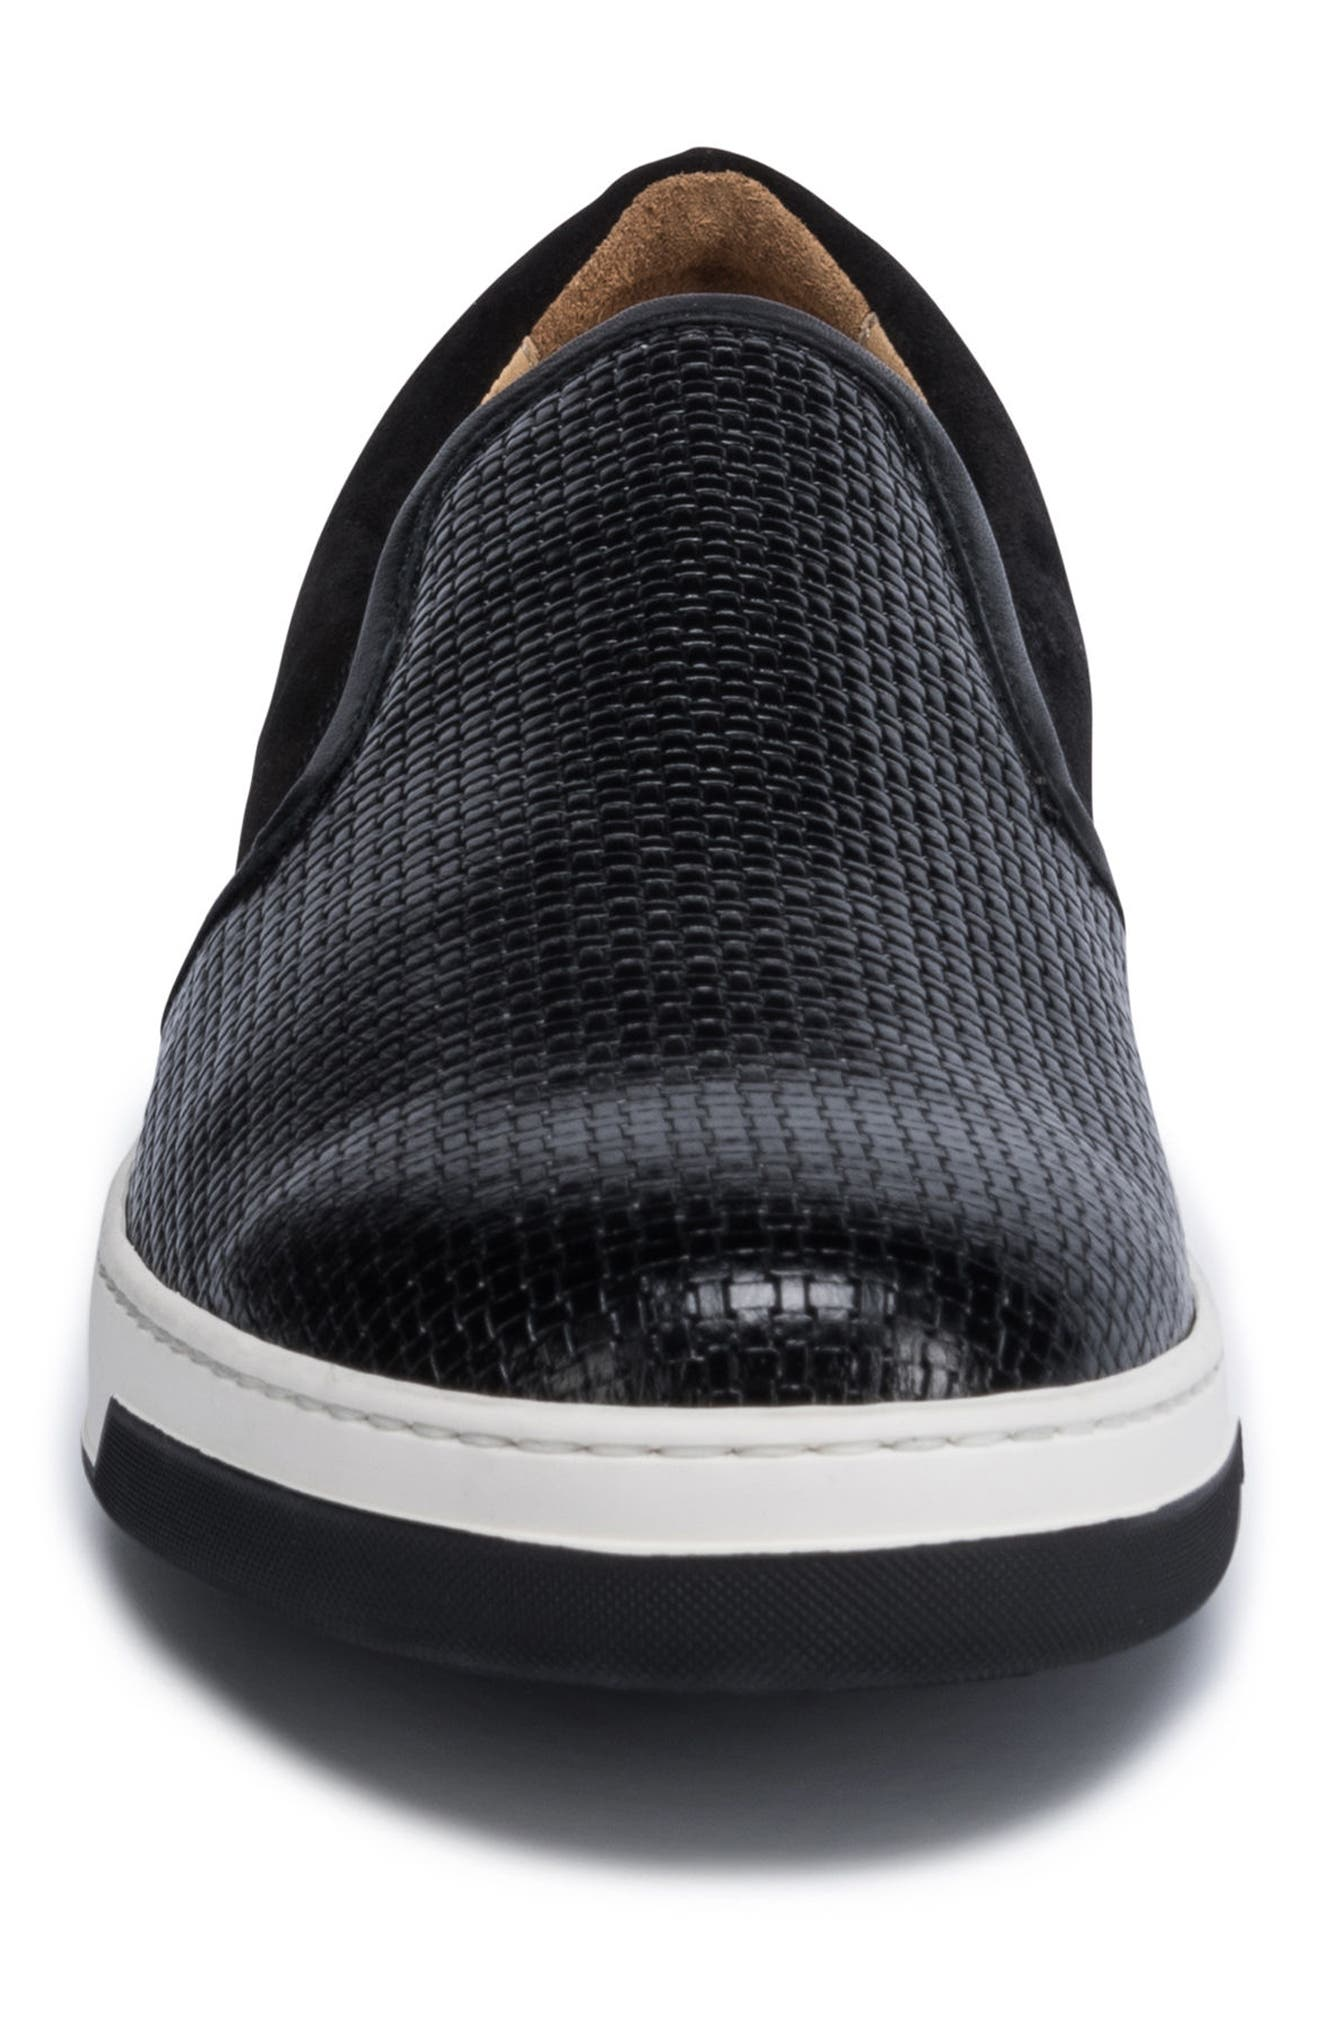 Cinque Terre Woven Slip-On Sneaker,                             Alternate thumbnail 4, color,                             001